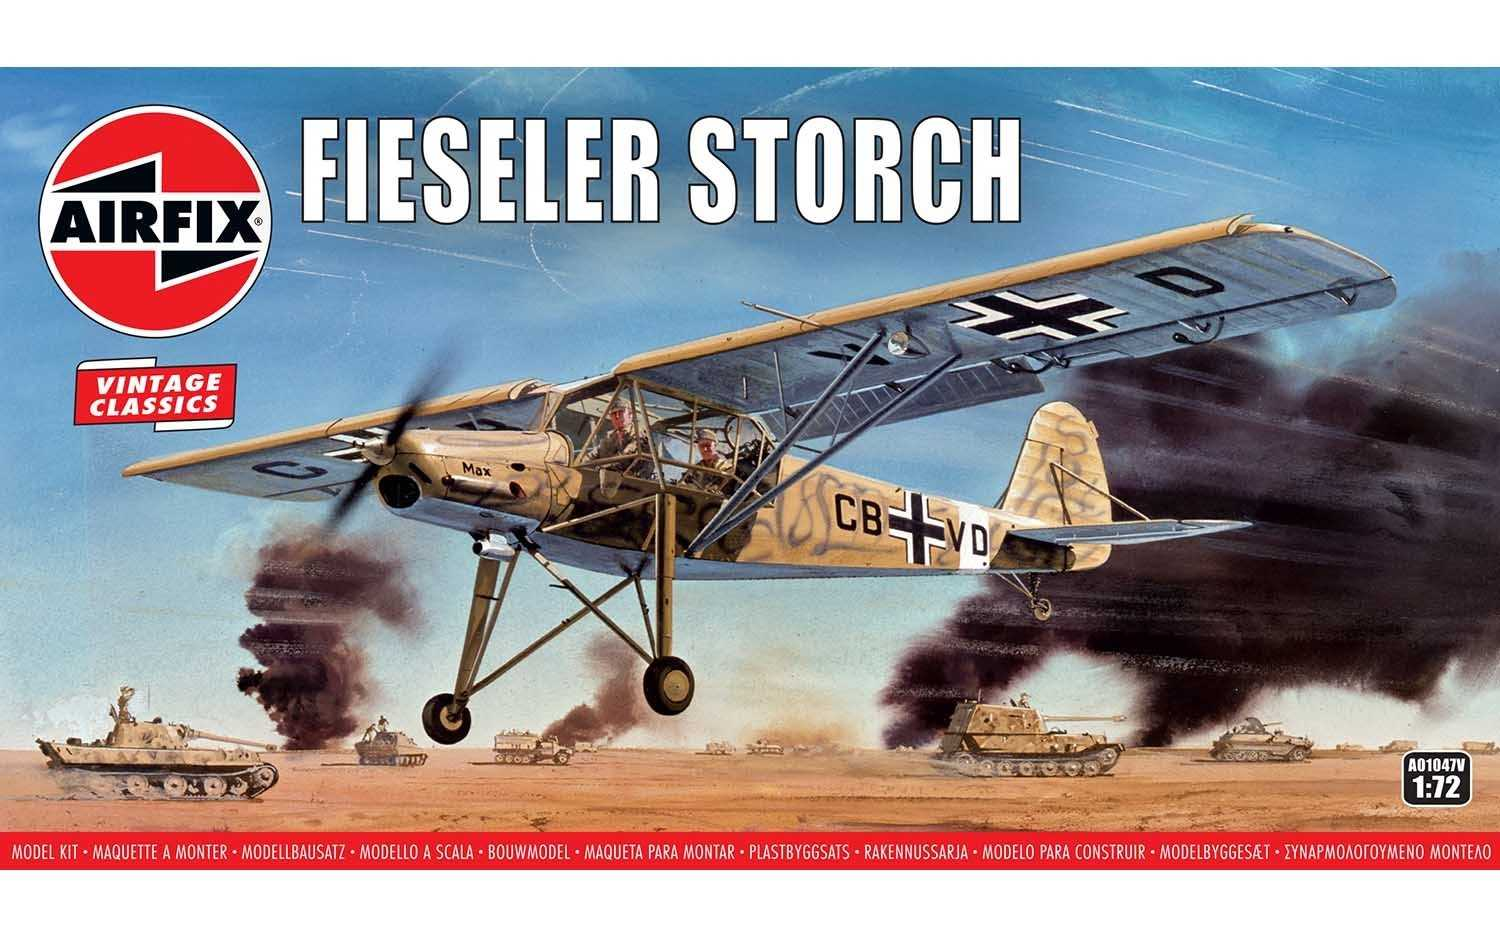 1:72 Fiesler Storch (Classic Kit VINTAGE)